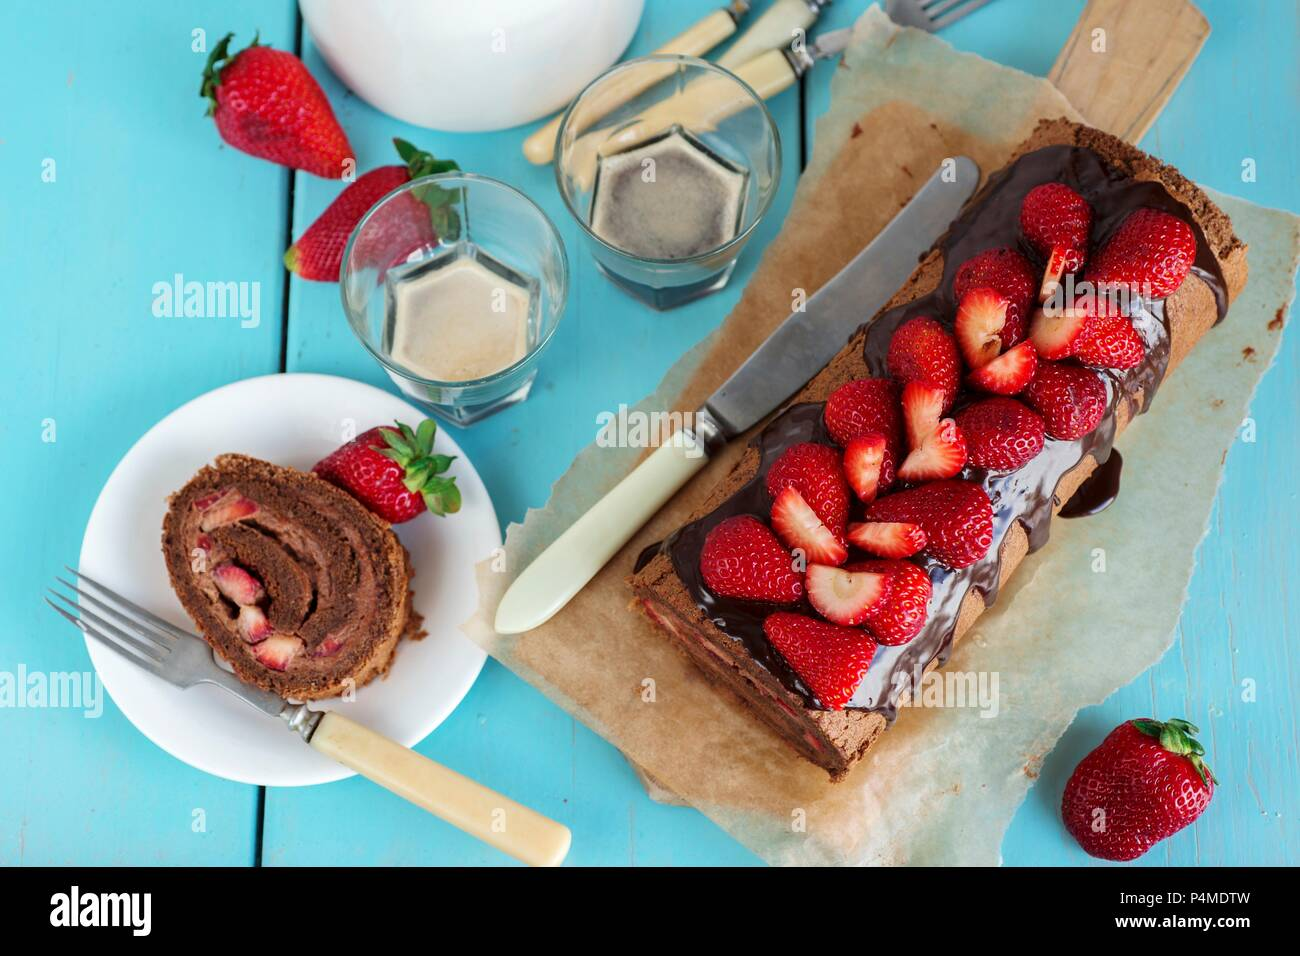 Chocolate Swiss roll with strawberries - Stock Image